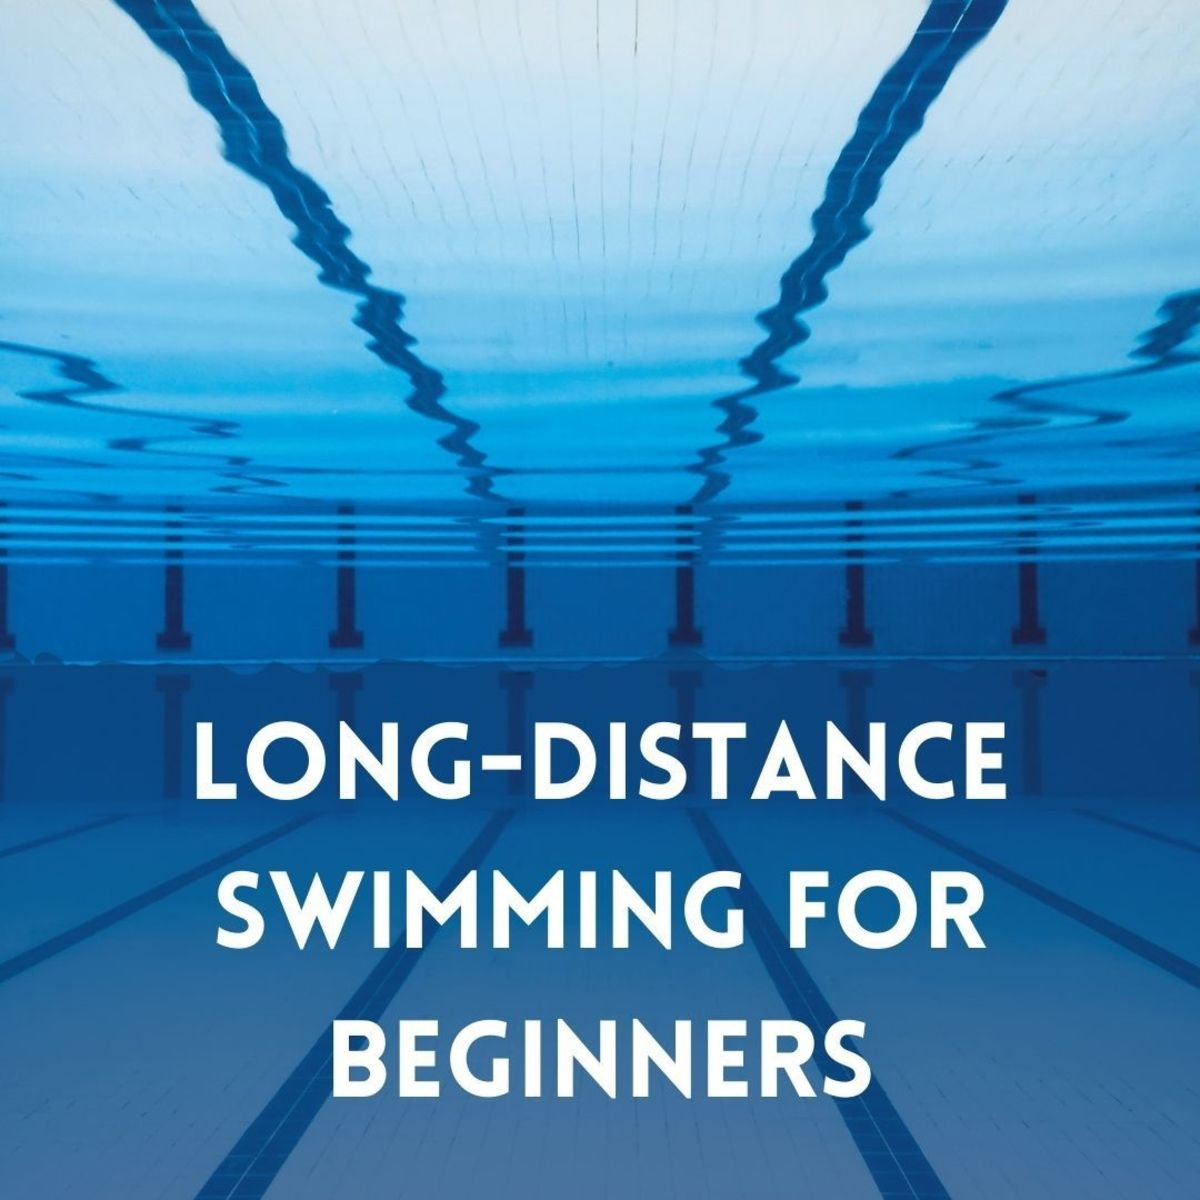 Long-distance swimming—tips and tricks to go from zero to 5k in a short amount of time